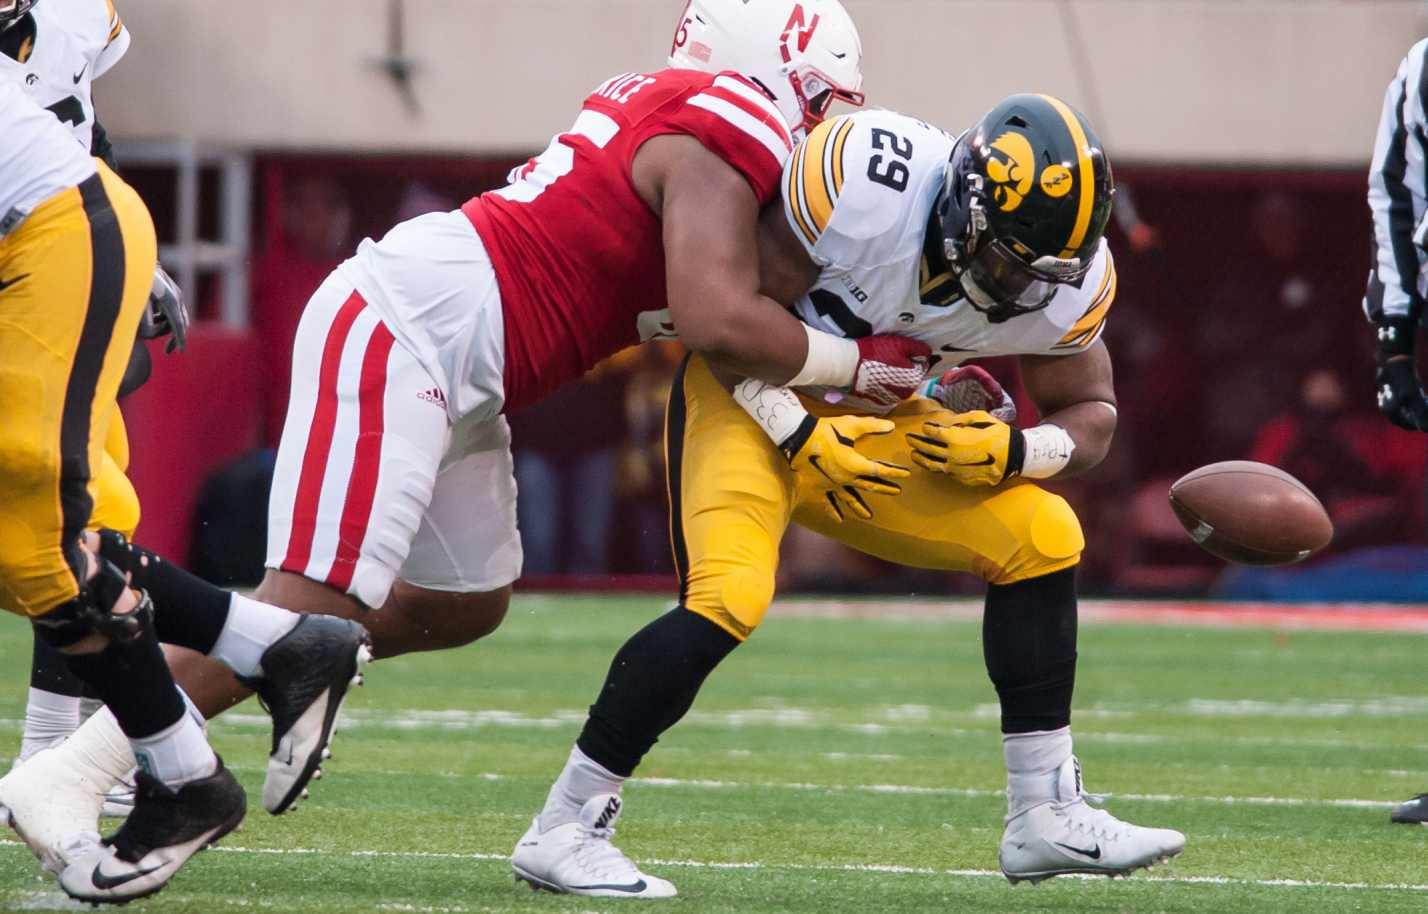 Kevin-Maurice-vs-Iowa-2015-football.jpg